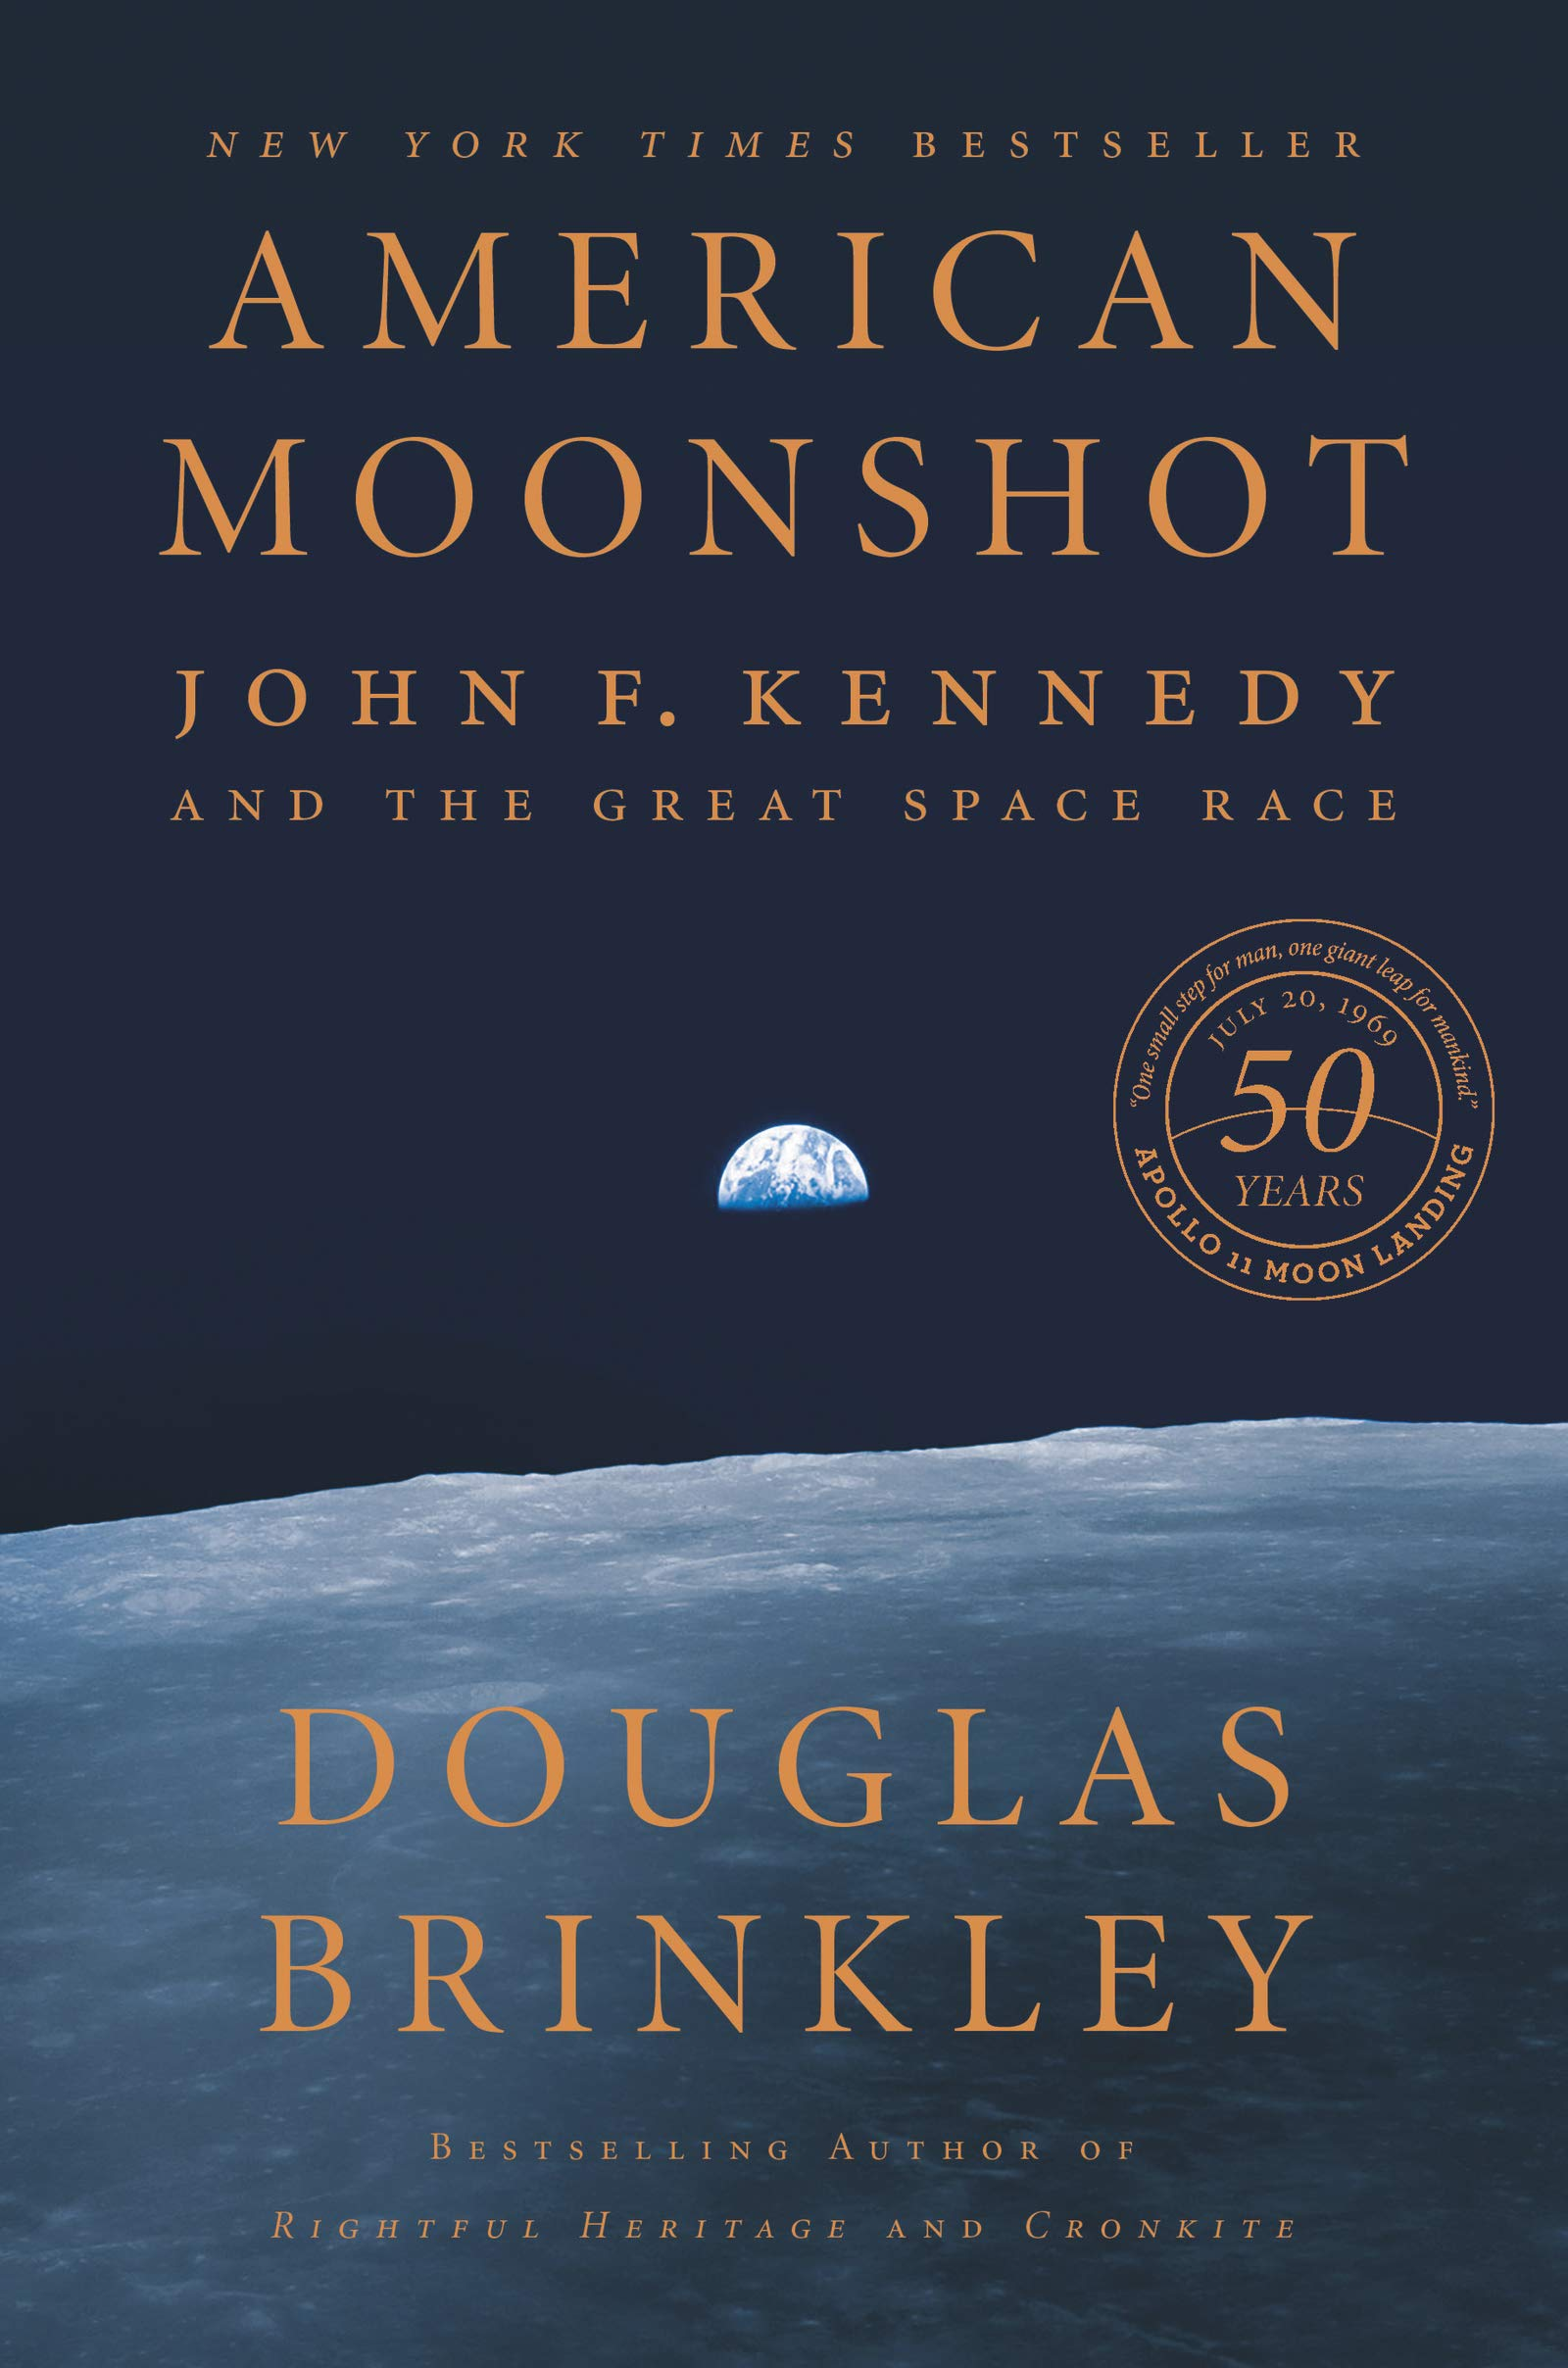 Amazon.com: American Moonshot: John F. Kennedy and the Great ...